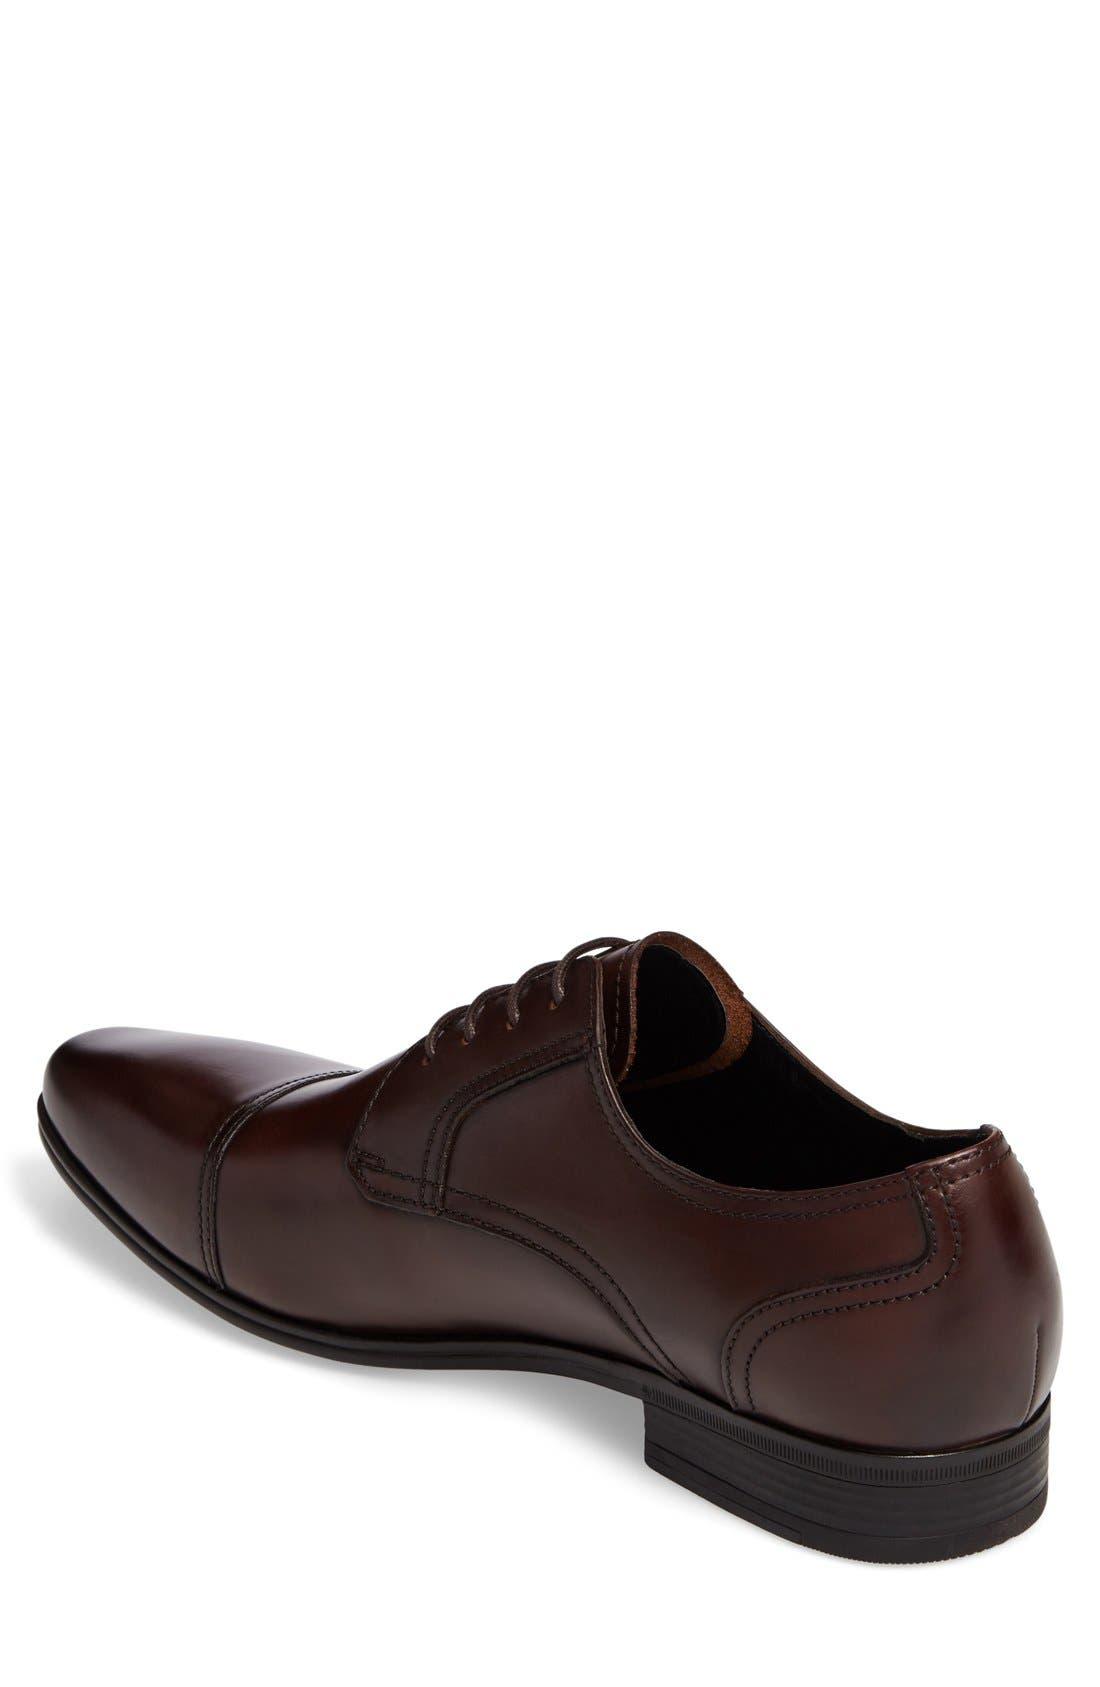 Alternate Image 2  - Reaction Kenneth Cole In a Min-ute Oxford (Men)